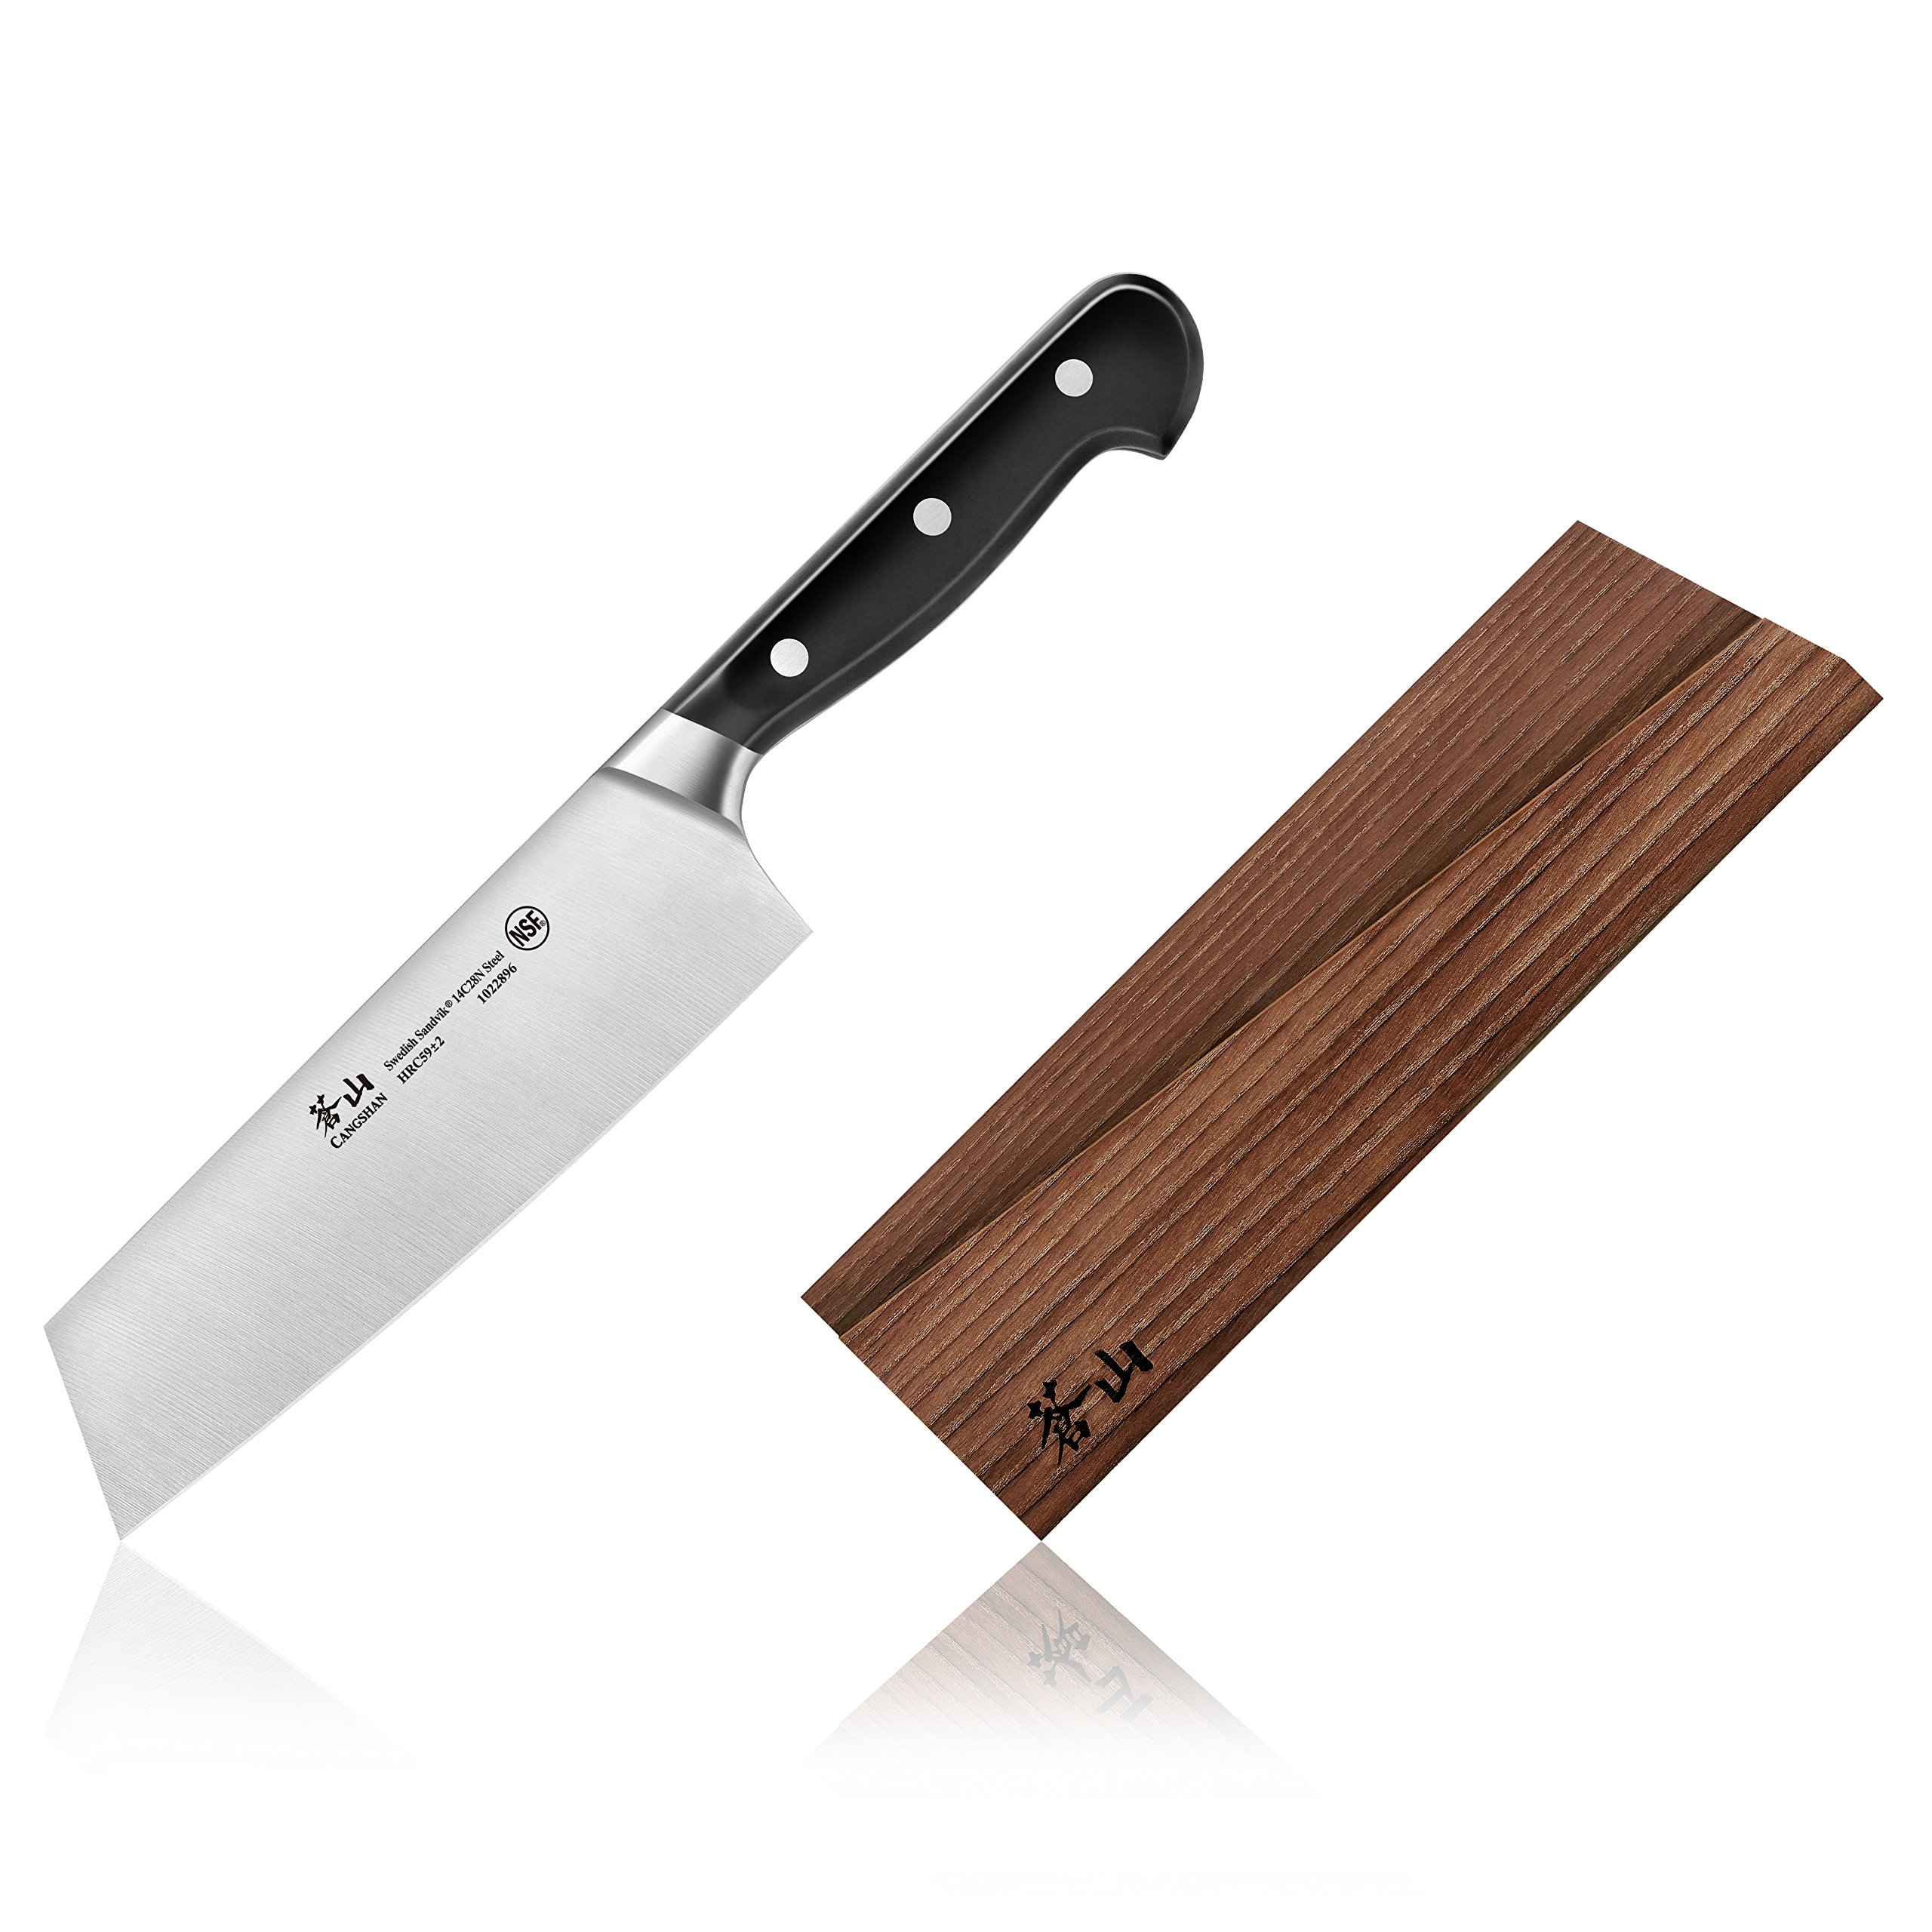 Cangshan TV2 Series 1022902 Swedish Sandvik 14C28N Steel Forged 7-Inch Nakiri Knife and Wood Sheath Set